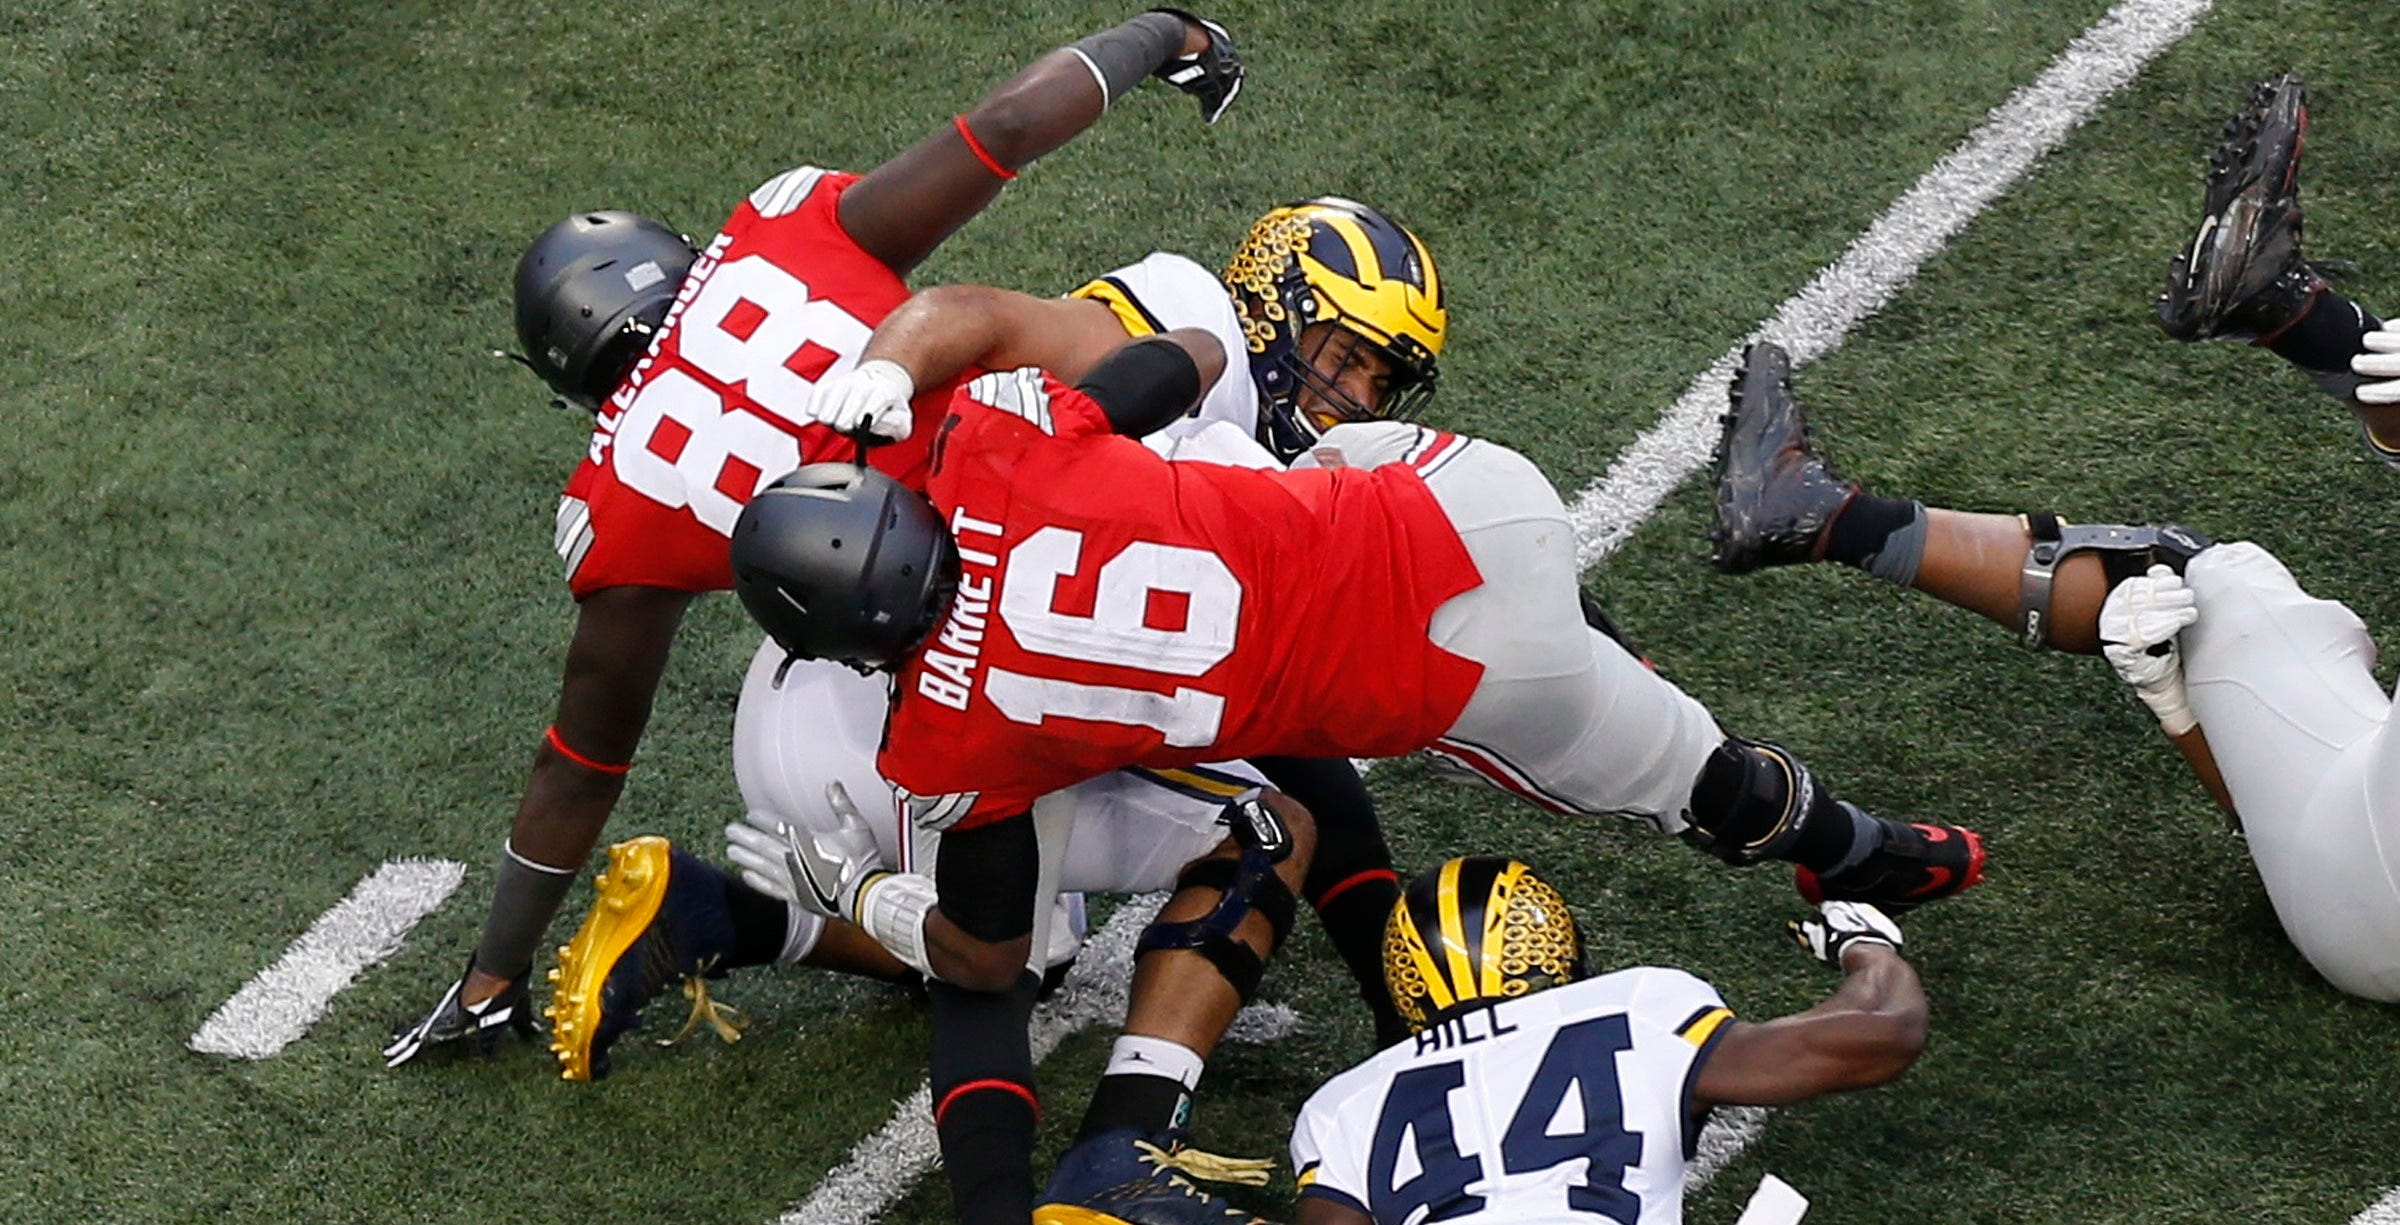 """There is no question where Urban Meyer stands on J.T. Barrett's controversial fourth-down conversion run in the 2016 Michigan game. """"He got the first down,"""" Meyer said."""